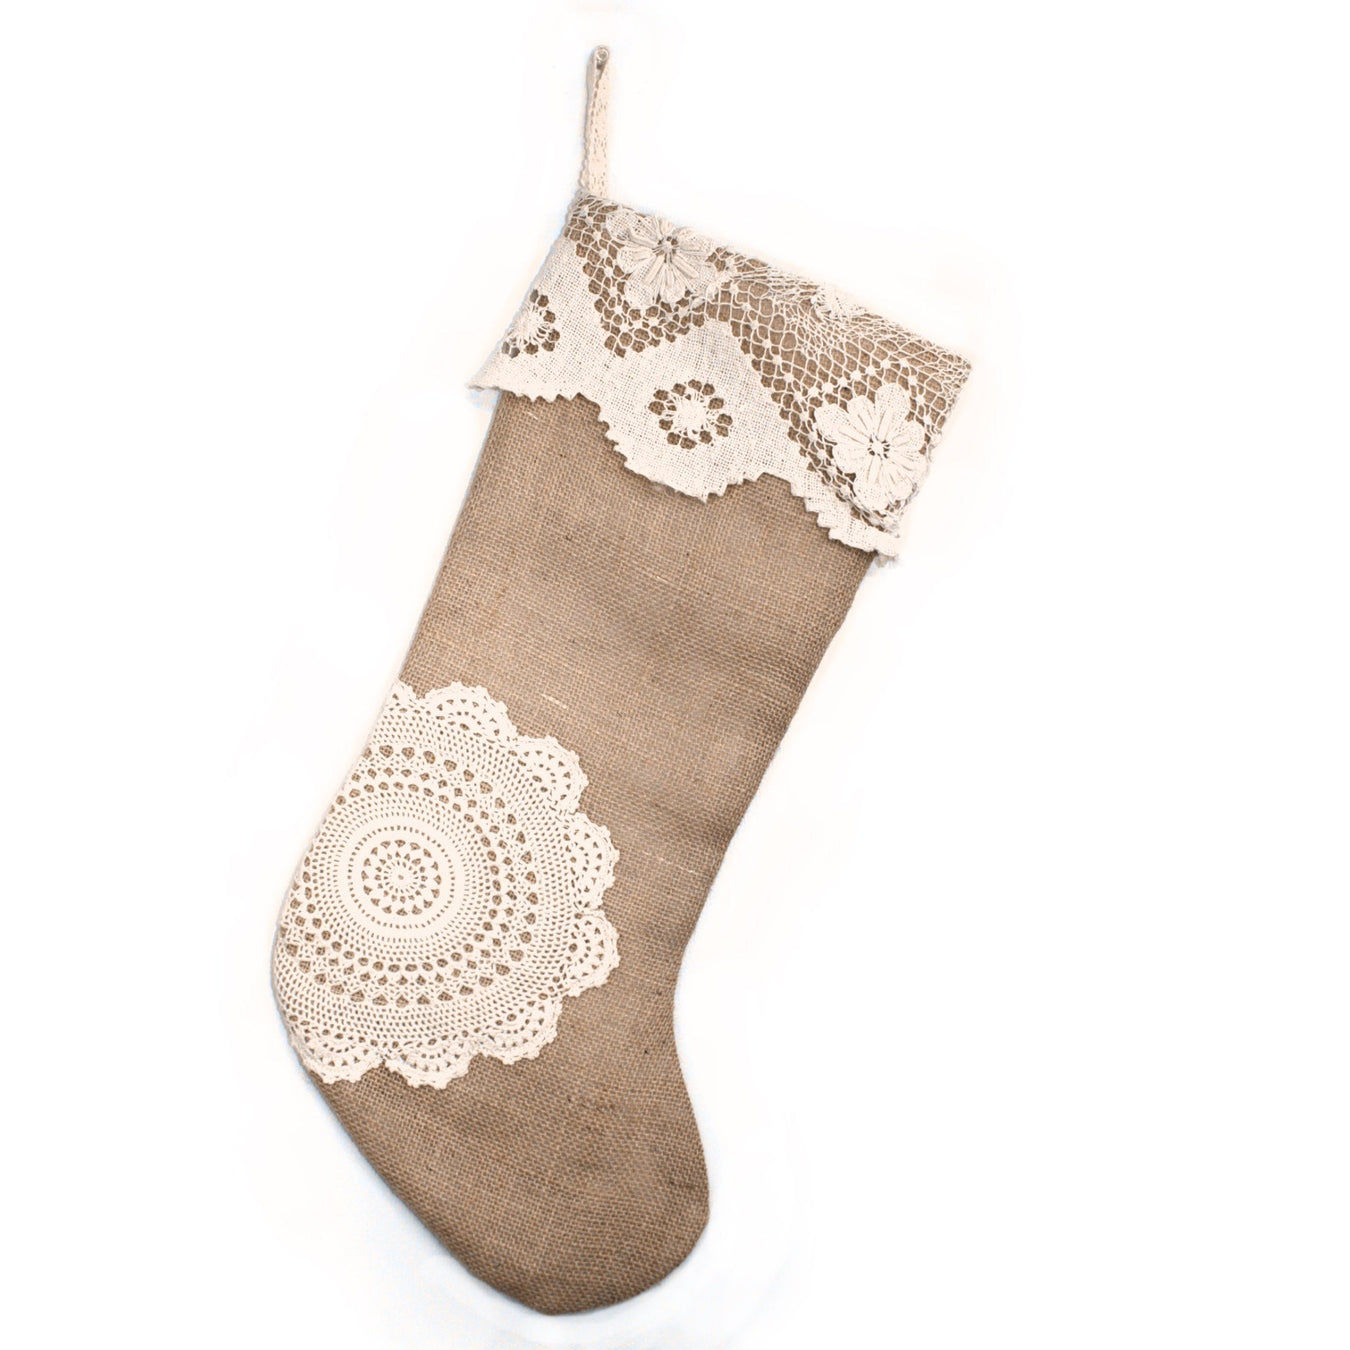 Antique Doily Stockings